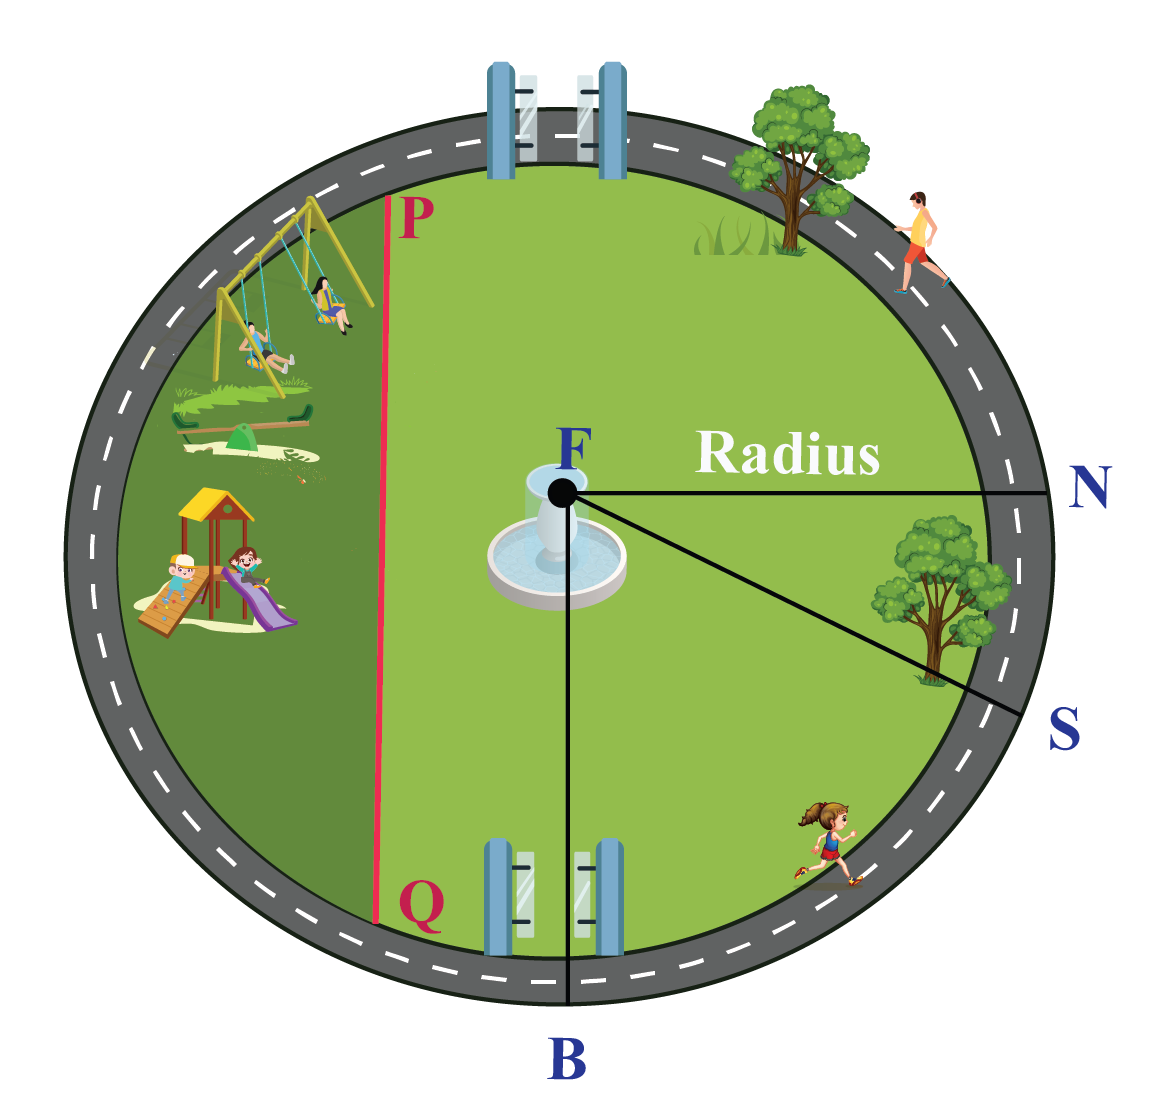 Multiple radii shown in the park